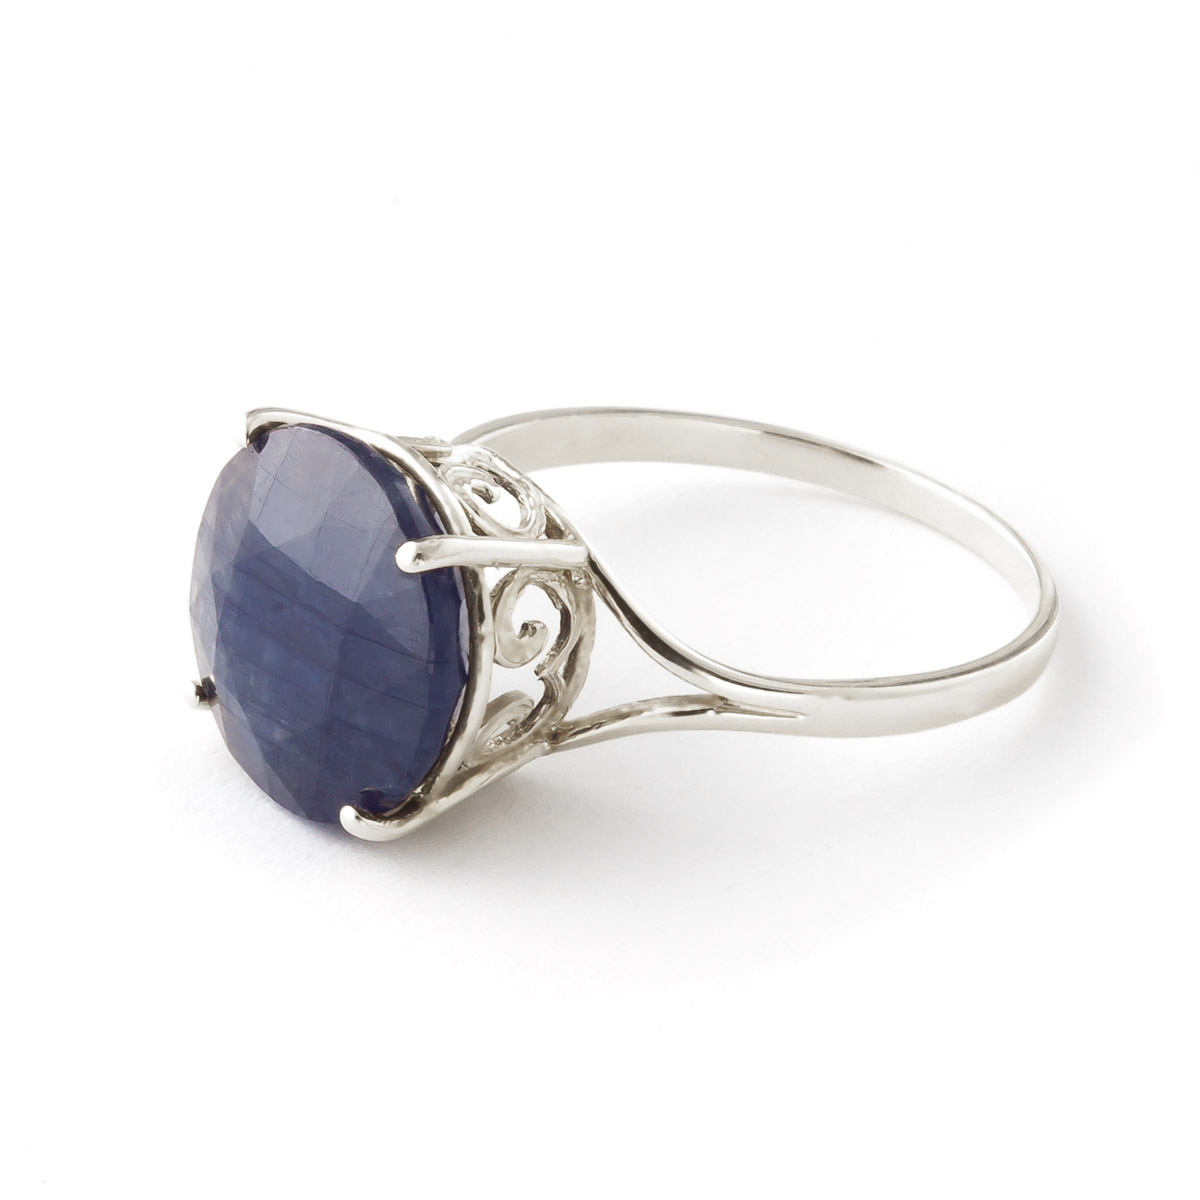 Bargain Round Brilliant Cut Sapphire Ring 9.5ct in 9ct White Gold Stockists